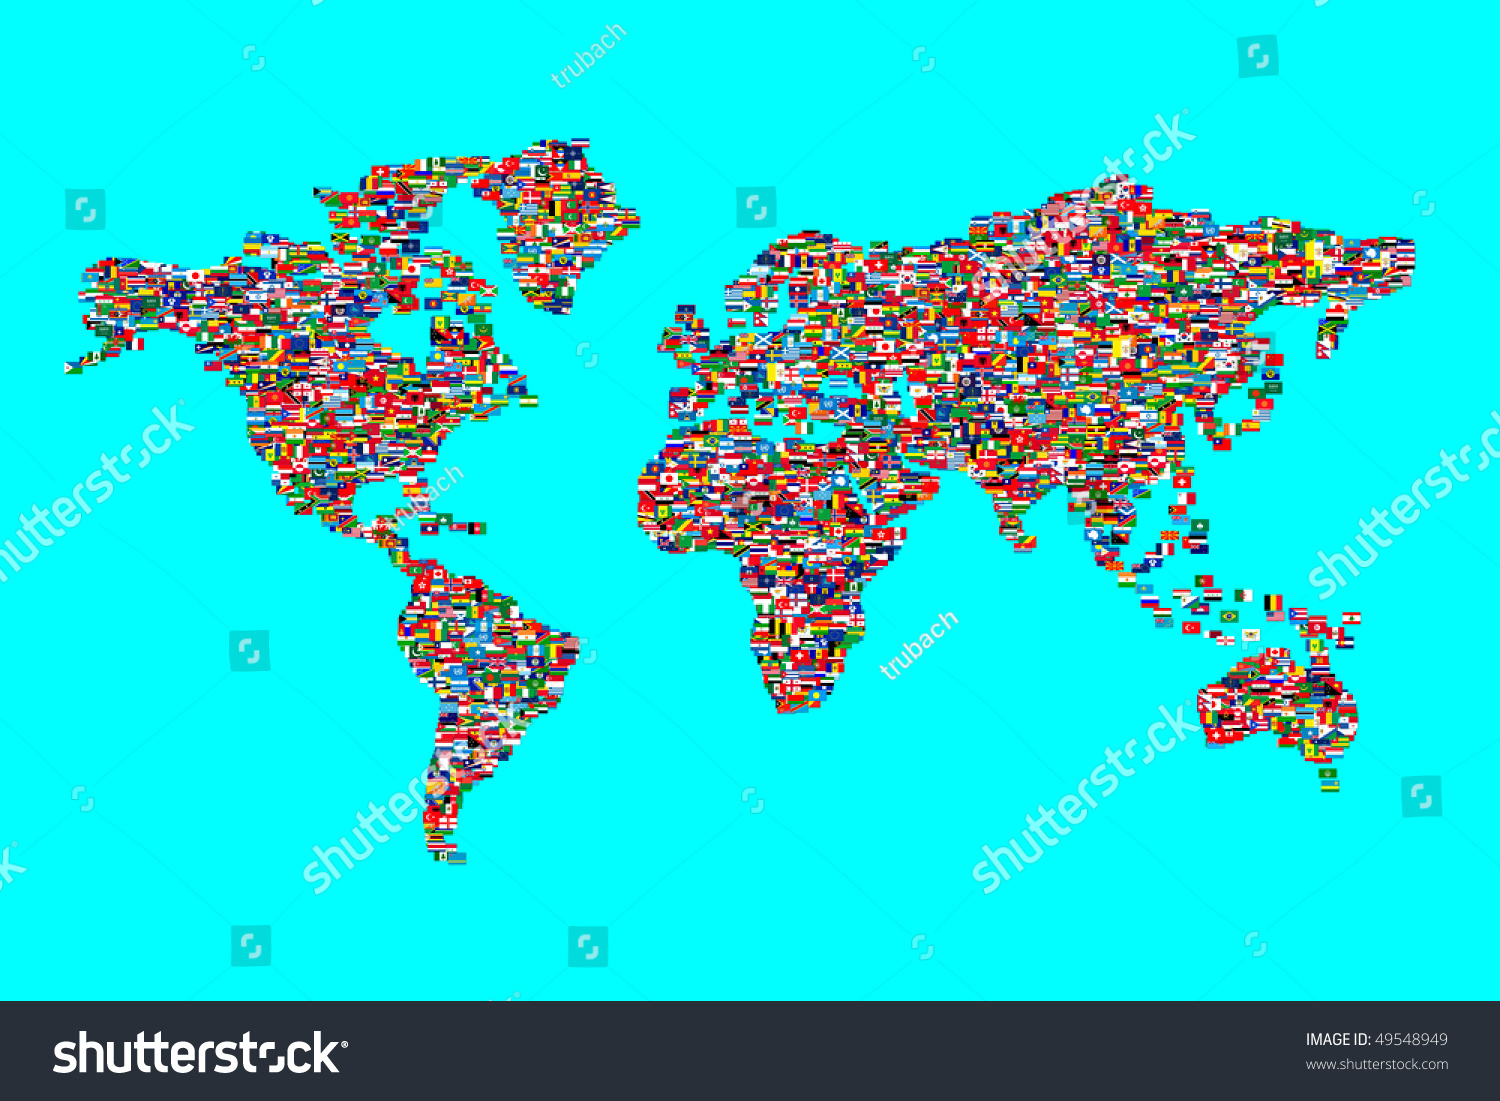 Illustration world map made world flags stock illustration illustration of world map made from world flags gumiabroncs Images